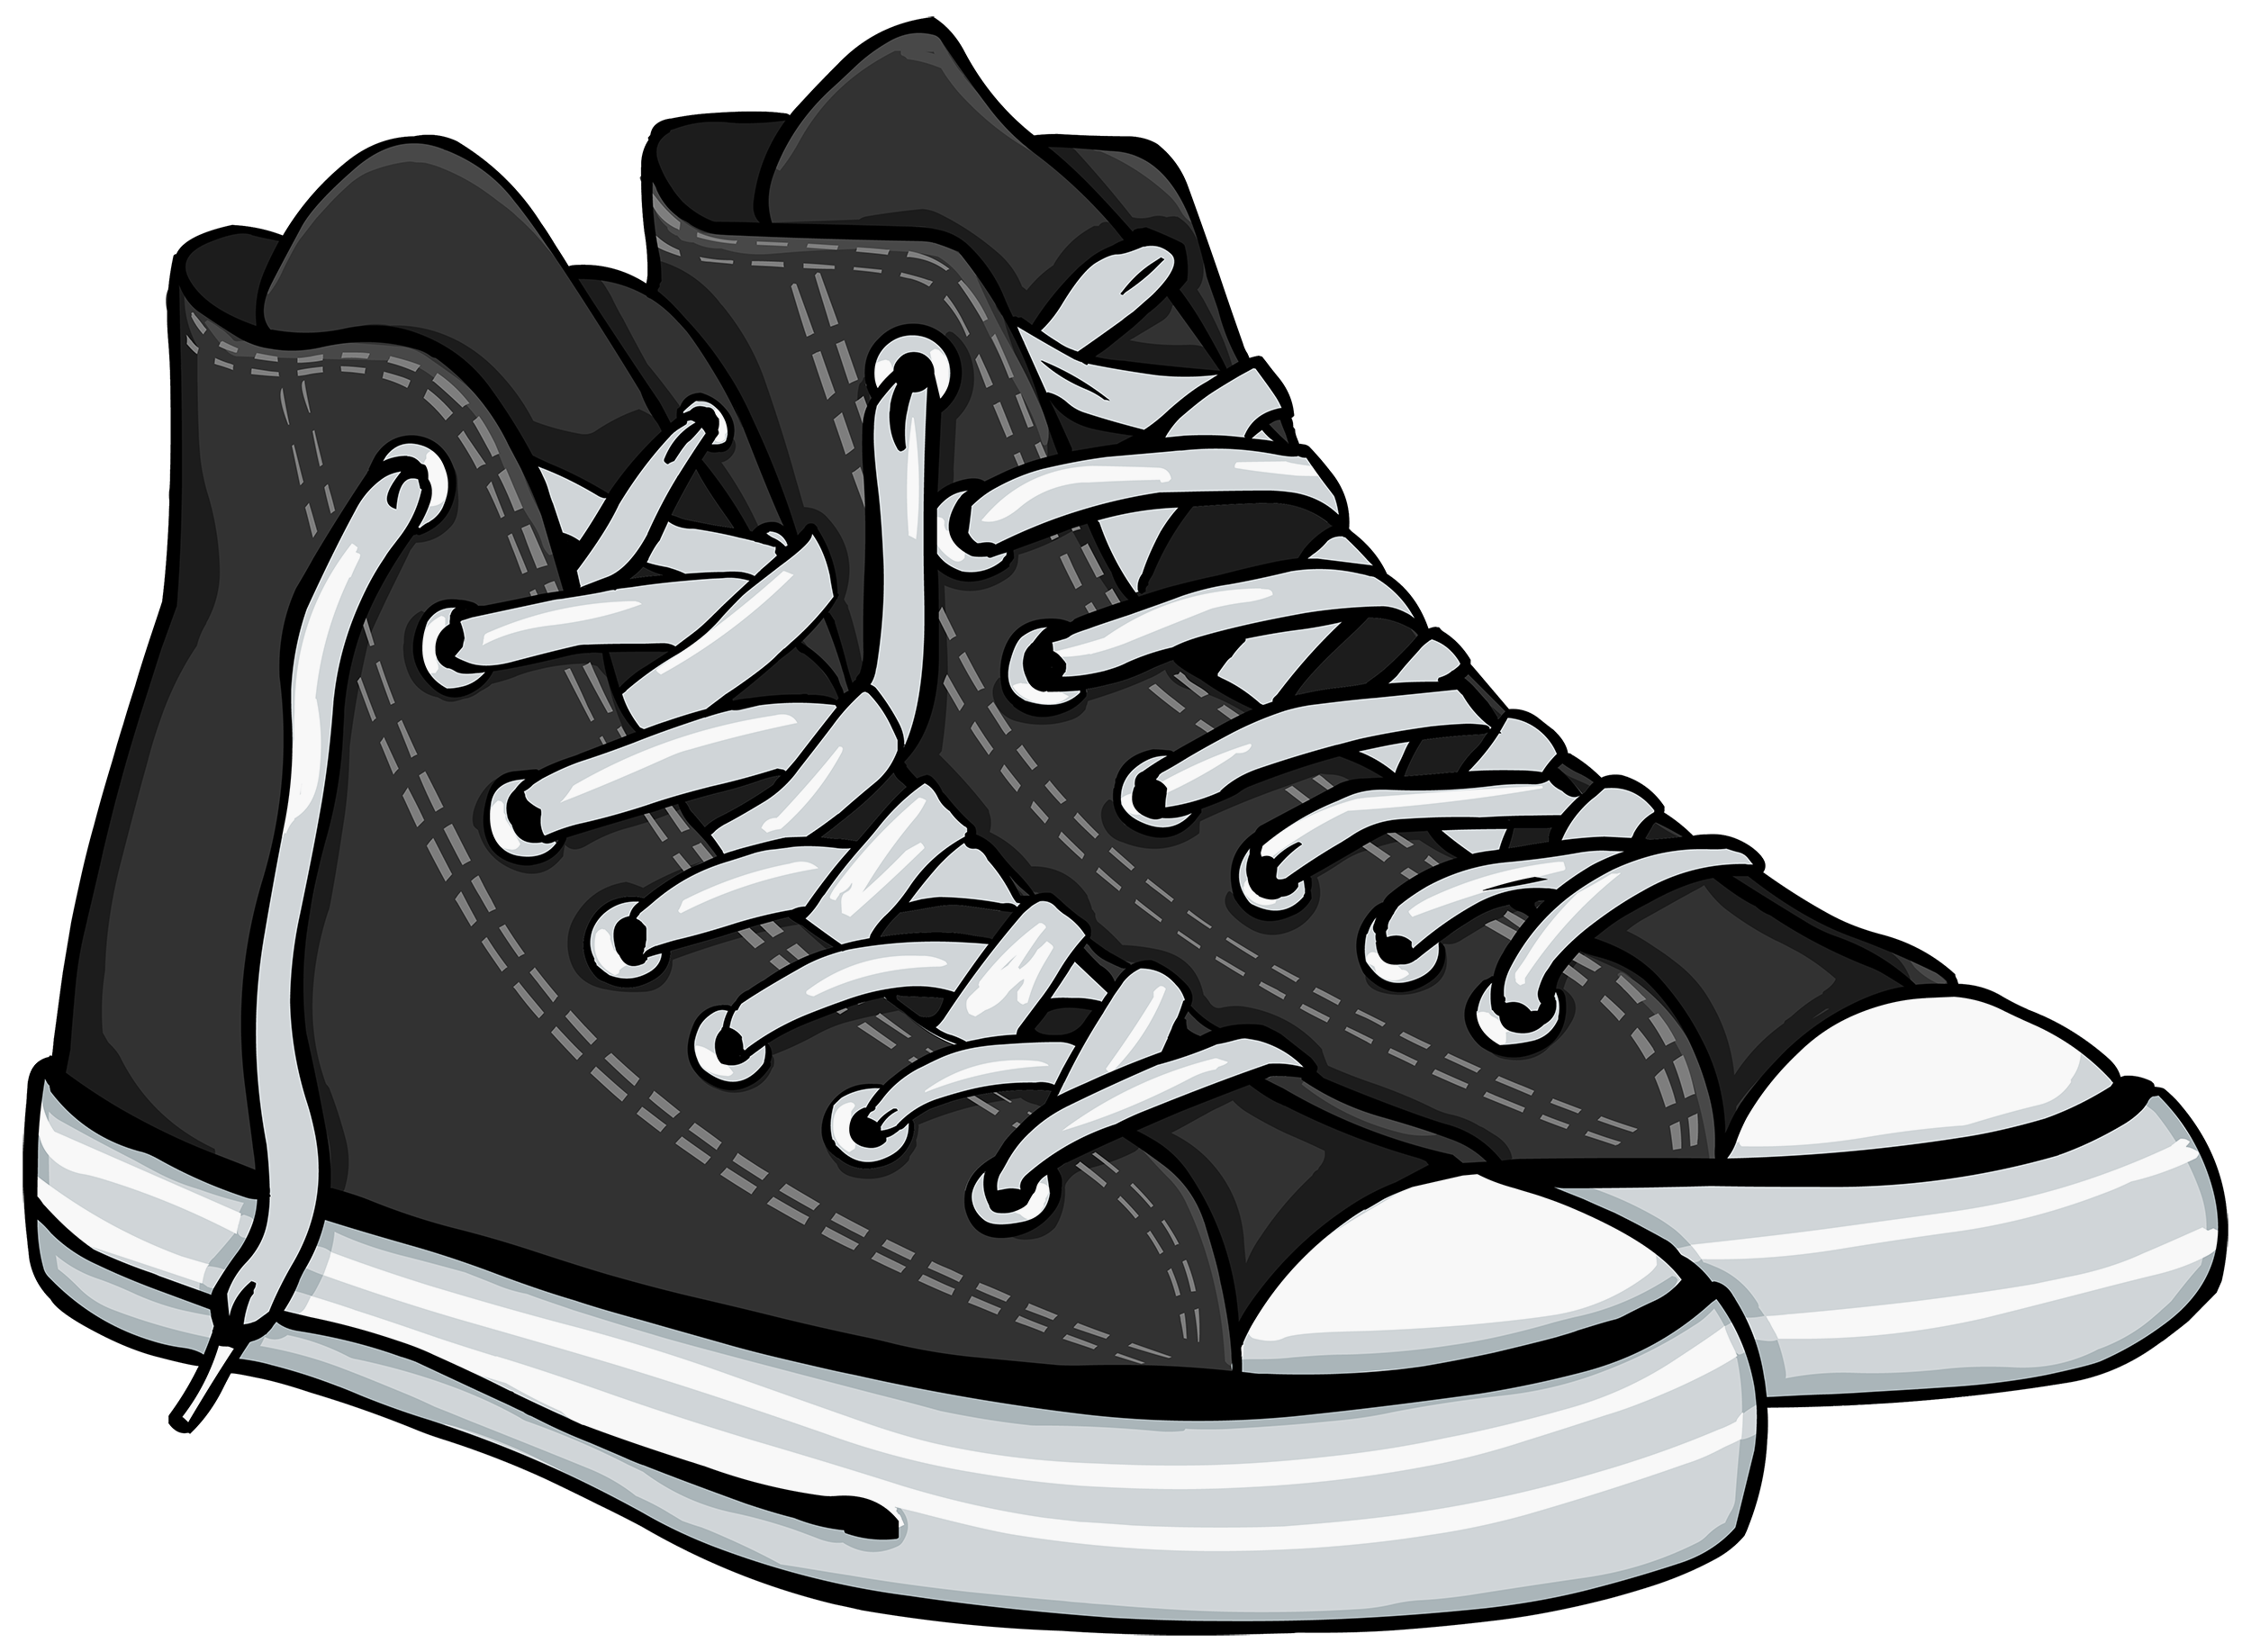 Tennis shoes clipart black and white collection.